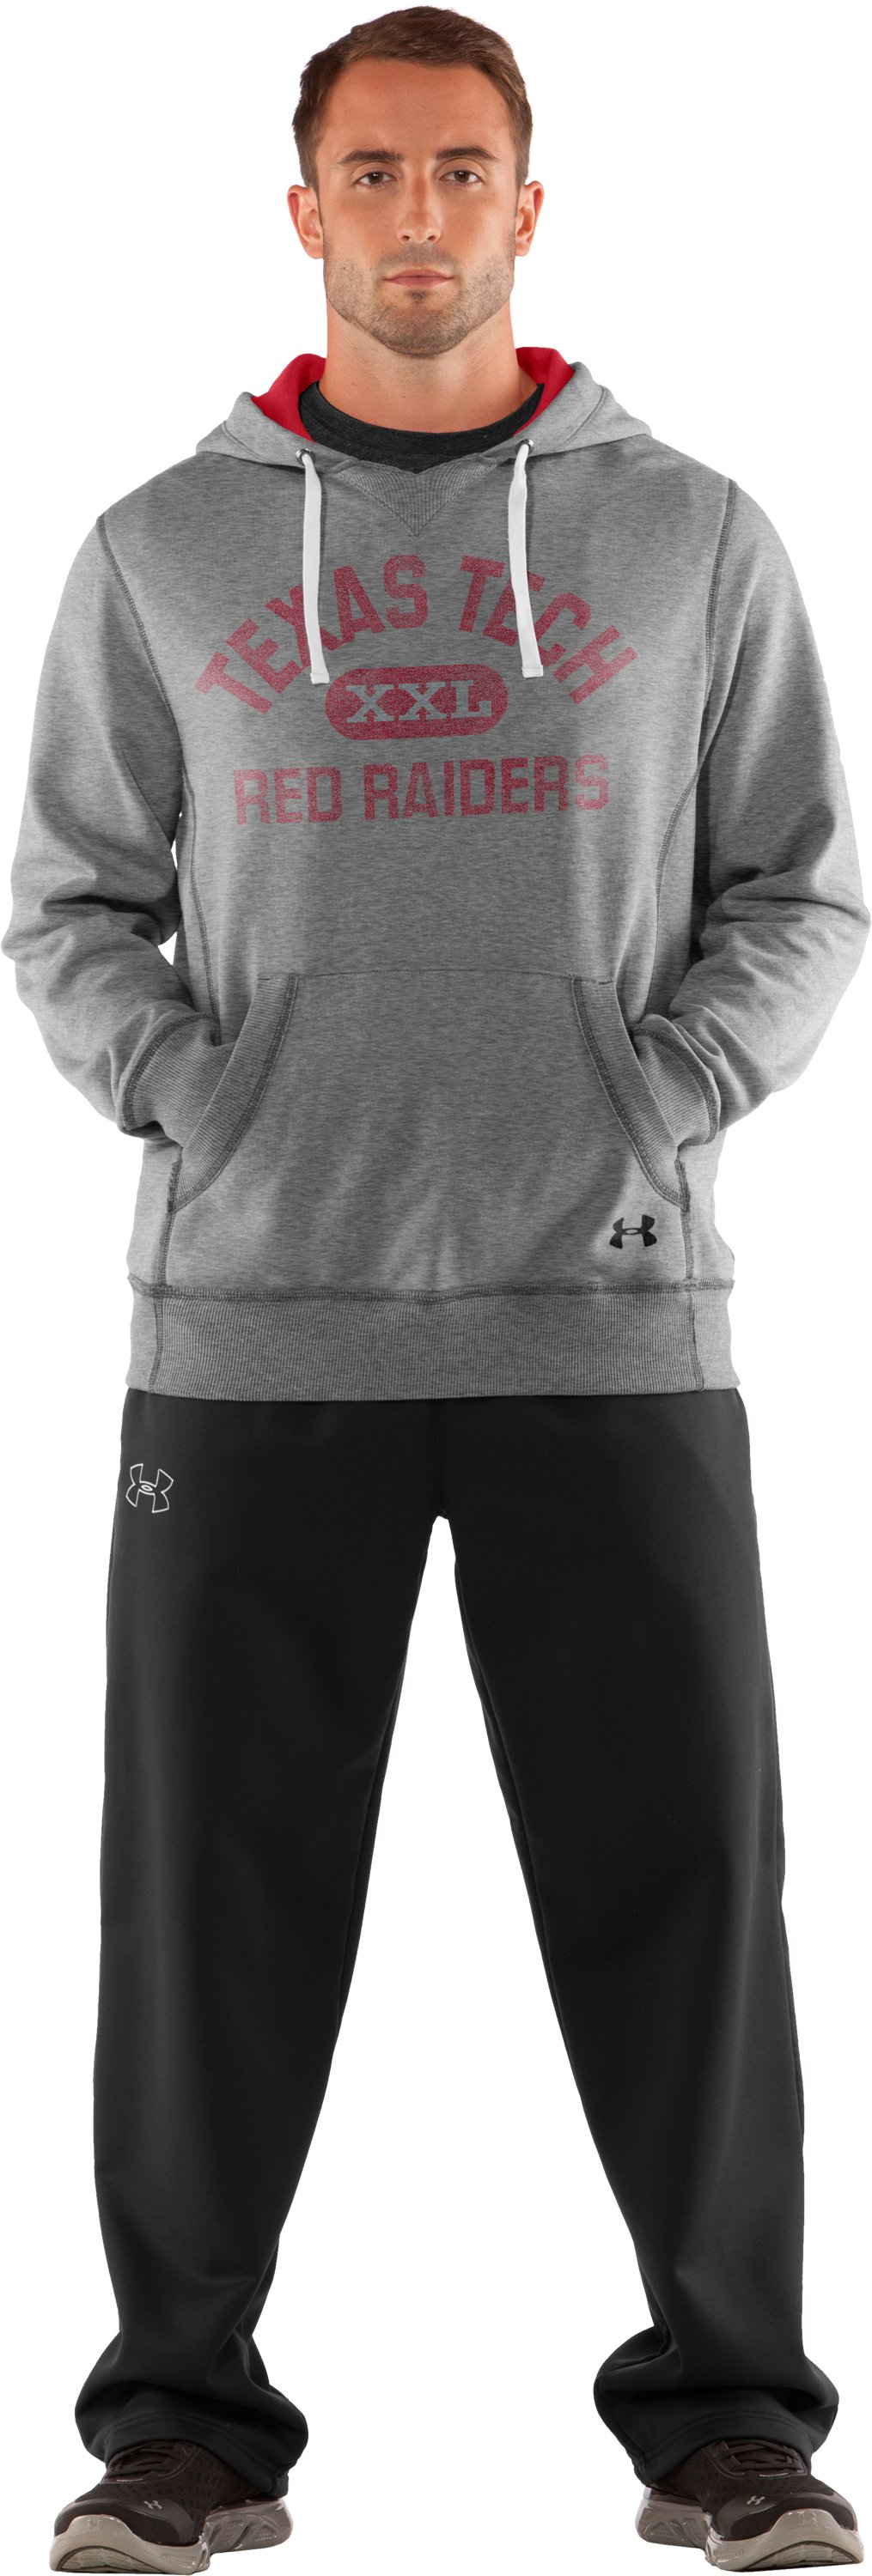 Men's Texas Tech Under Armour® Legacy Hoodie, True Gray Heather